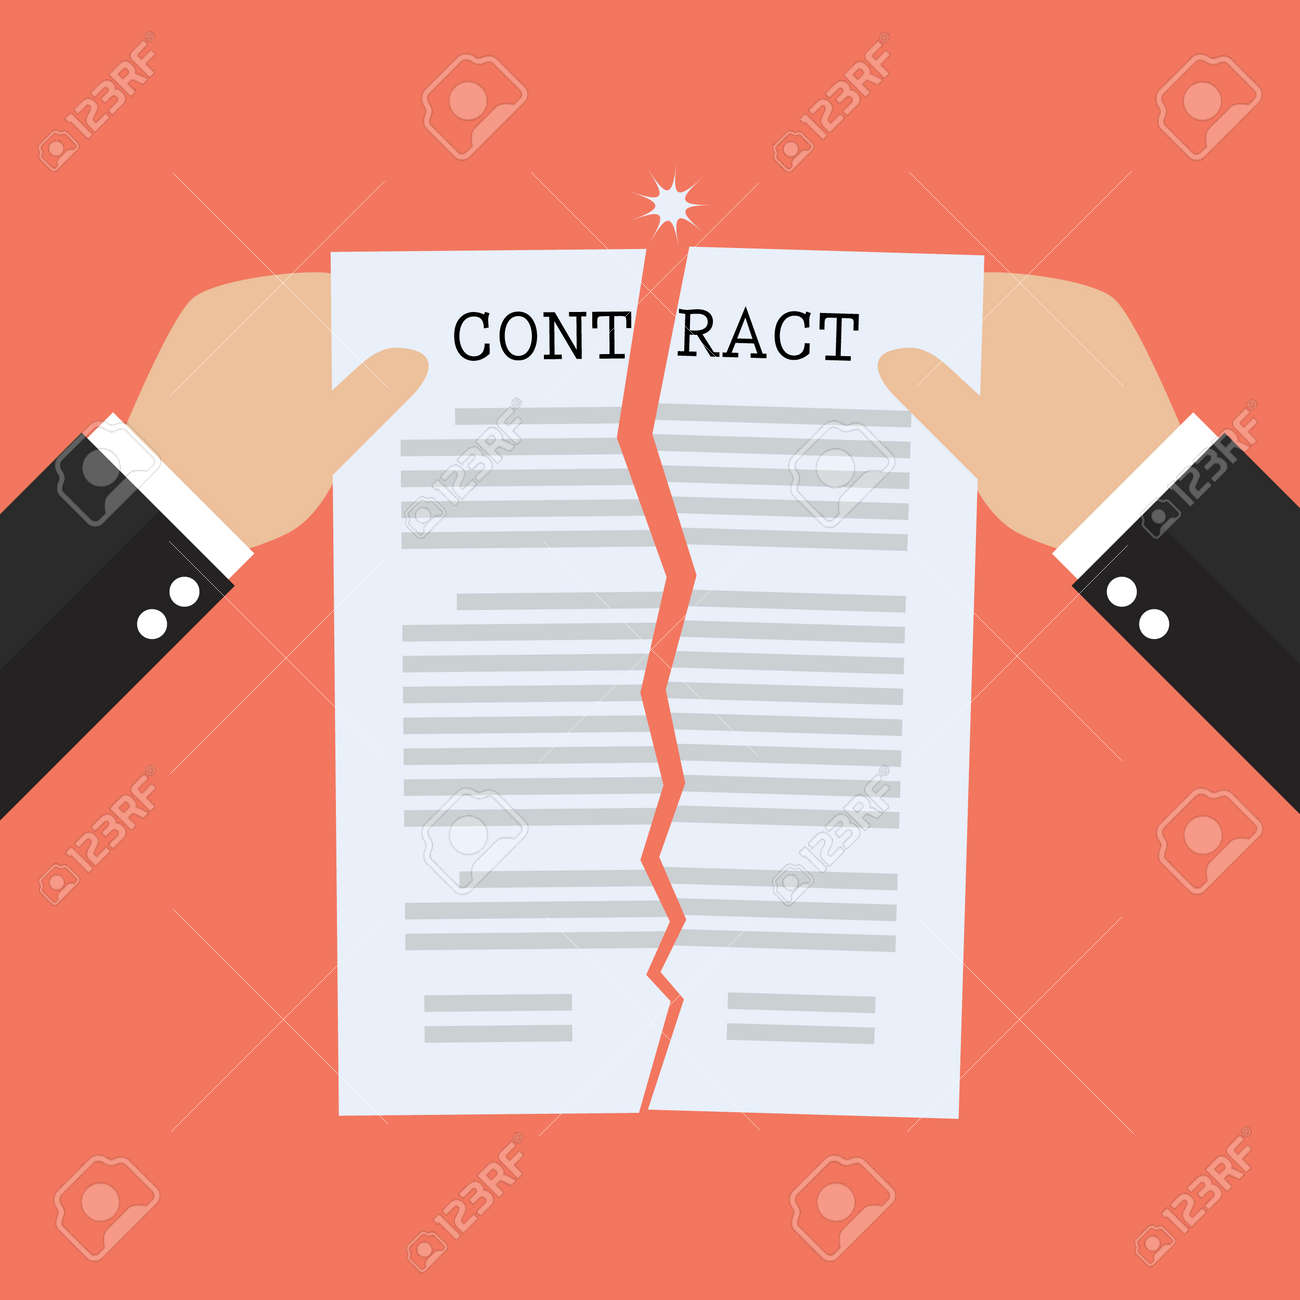 Hands tearing apart contract document paper. agreement cancellation - 53411833